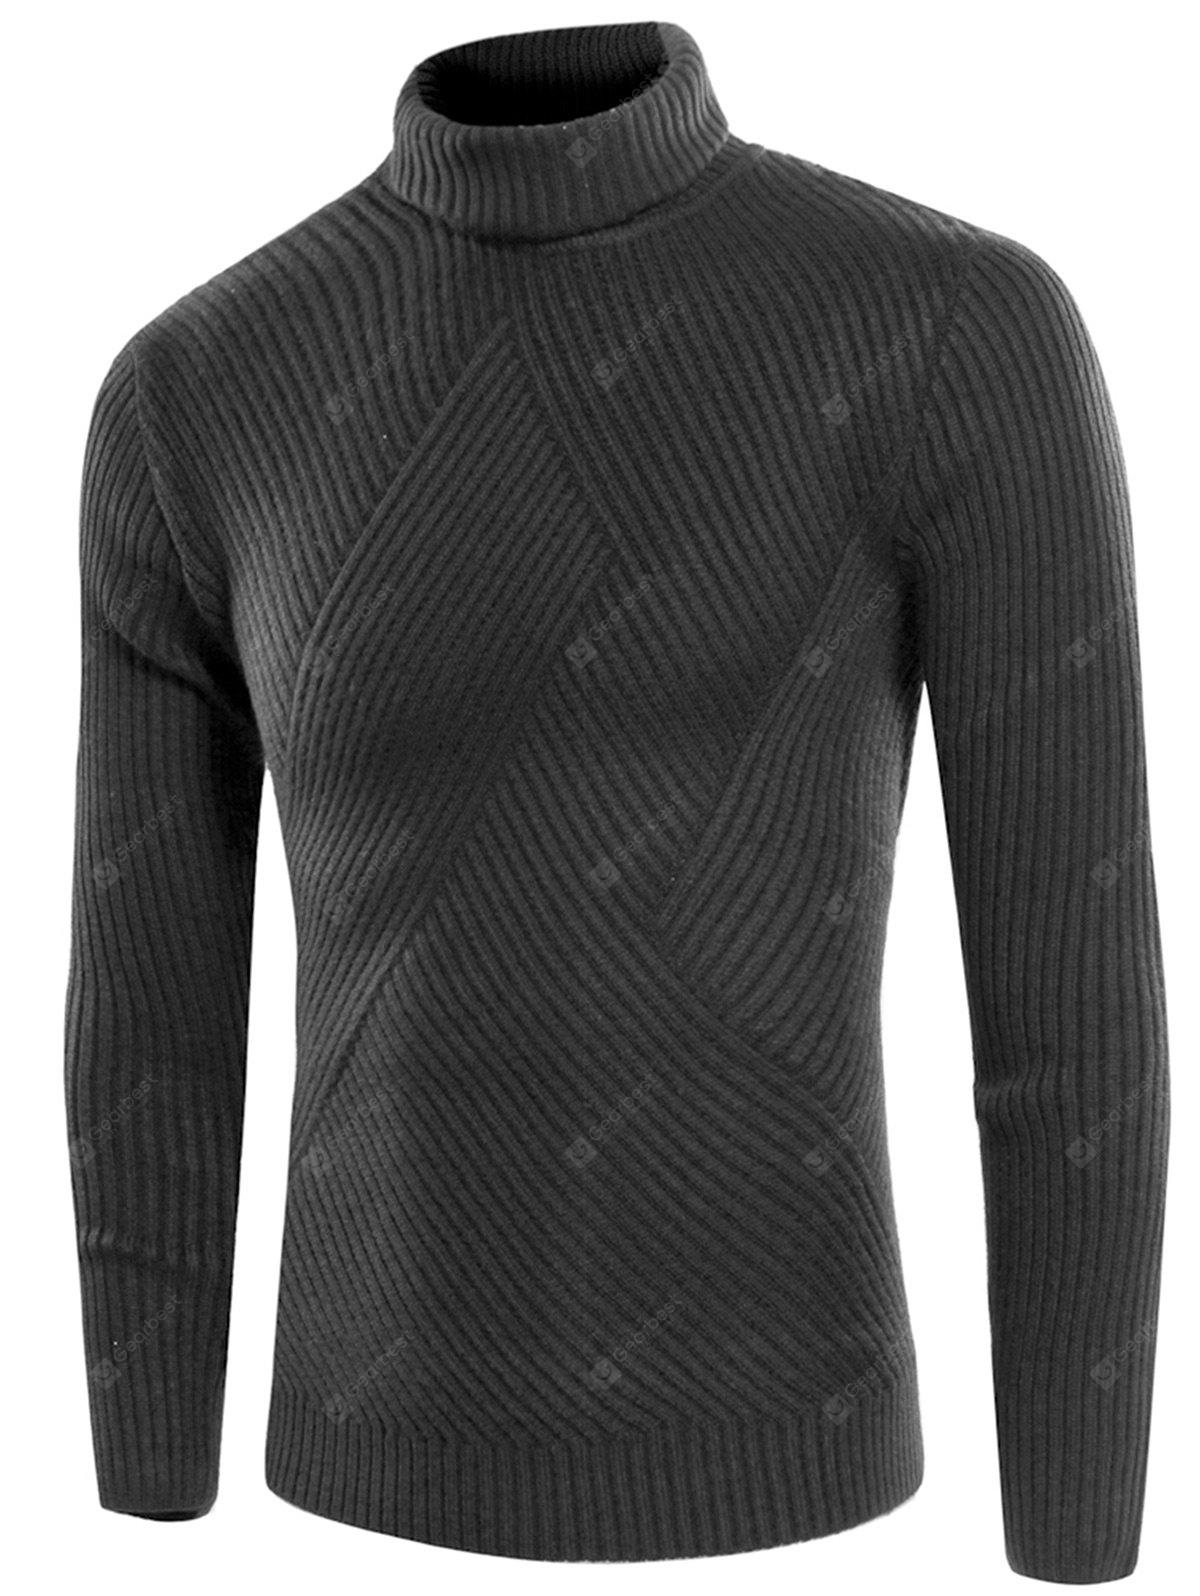 DEEP GRAY Turtle Neck Twill Knitting Ribbed Sweater